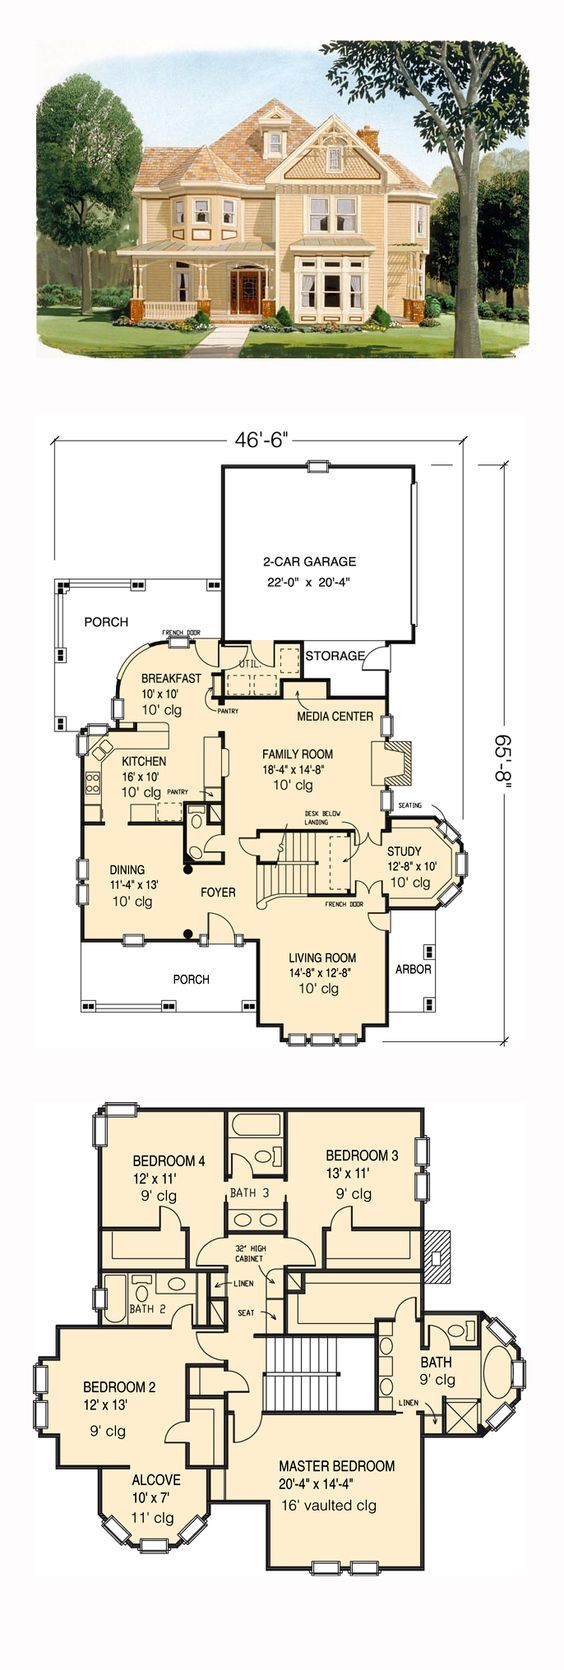 4 story victorian house plans for 3 story victorian house floor plans